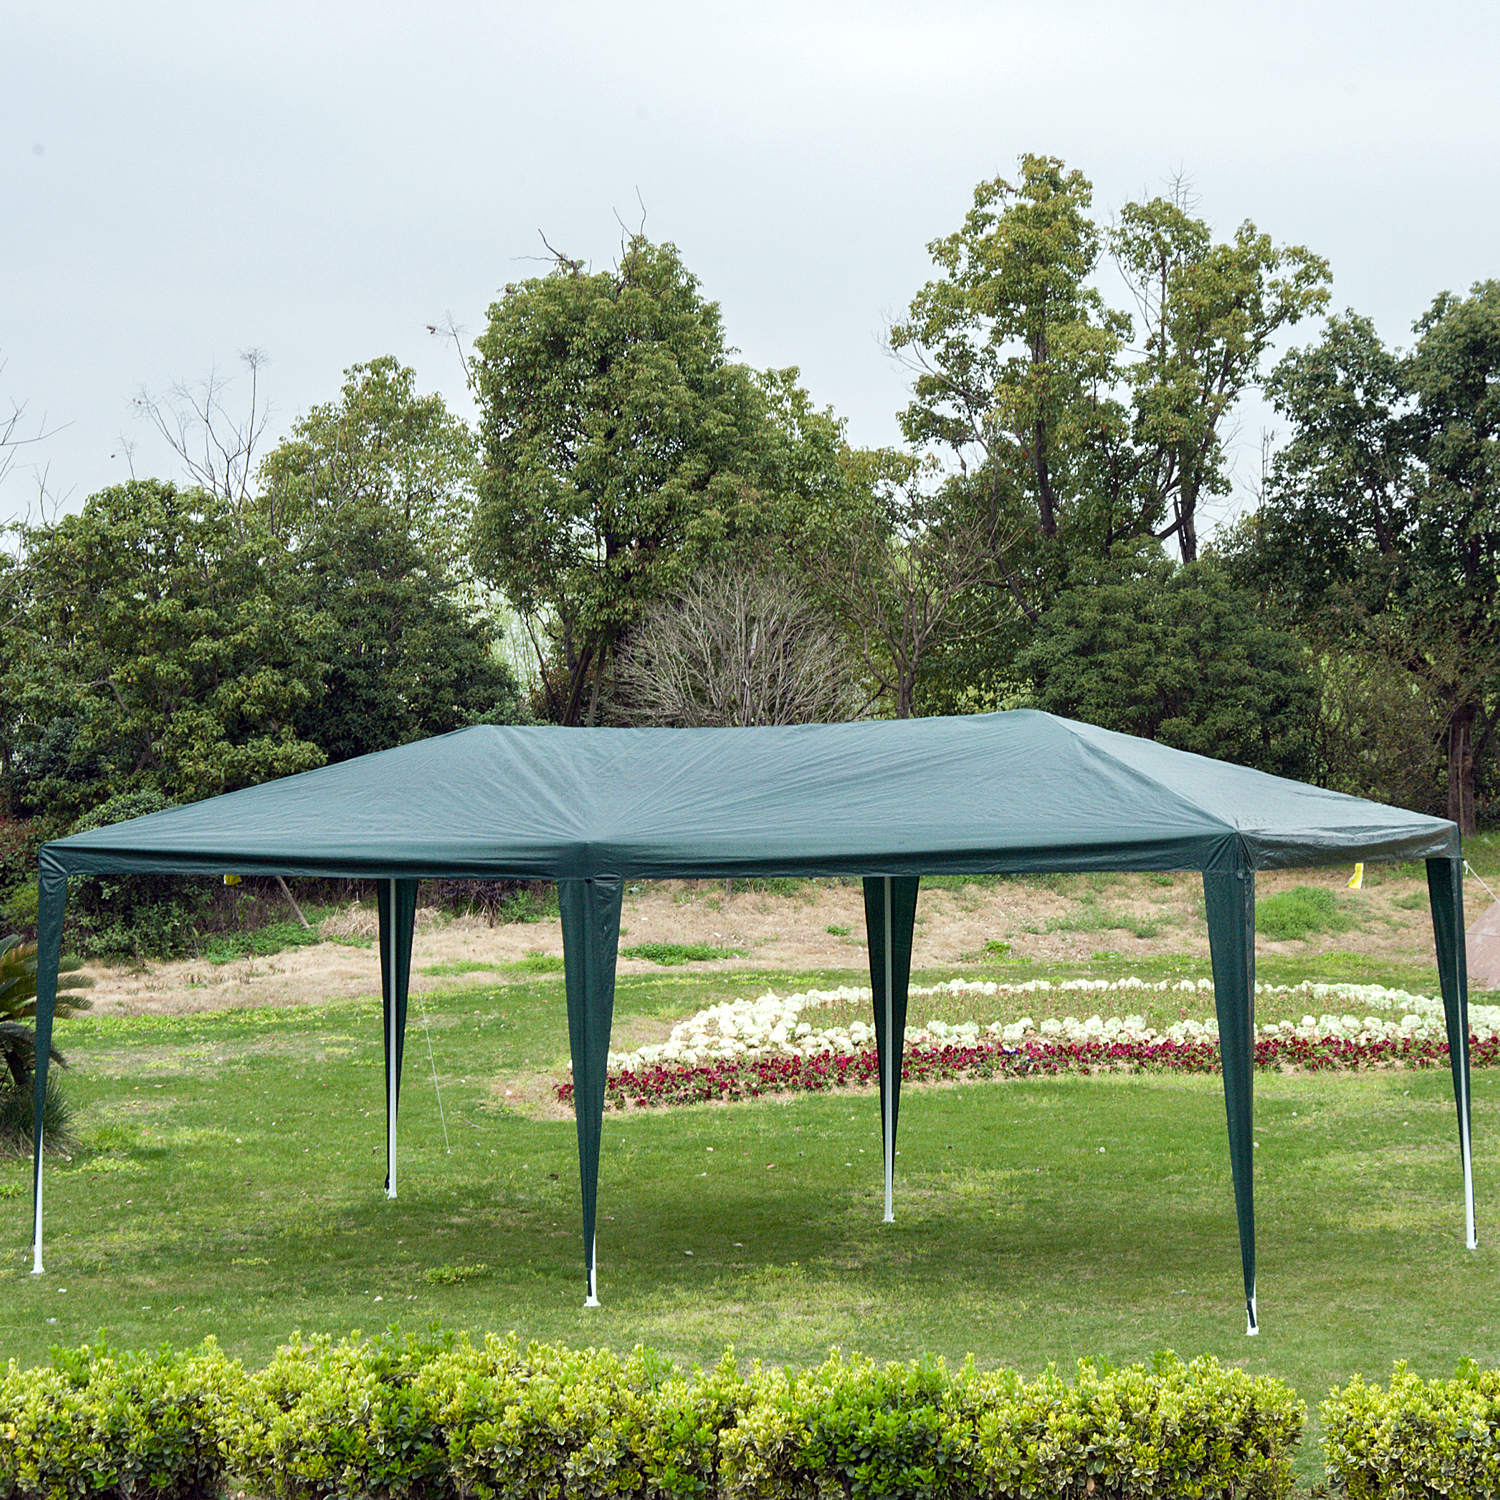 10-039-x-20-039-Gazebo-Canopy-Cover-Tent-Patio-Party-w-Removable-Mesh-Side-Walls thumbnail 7